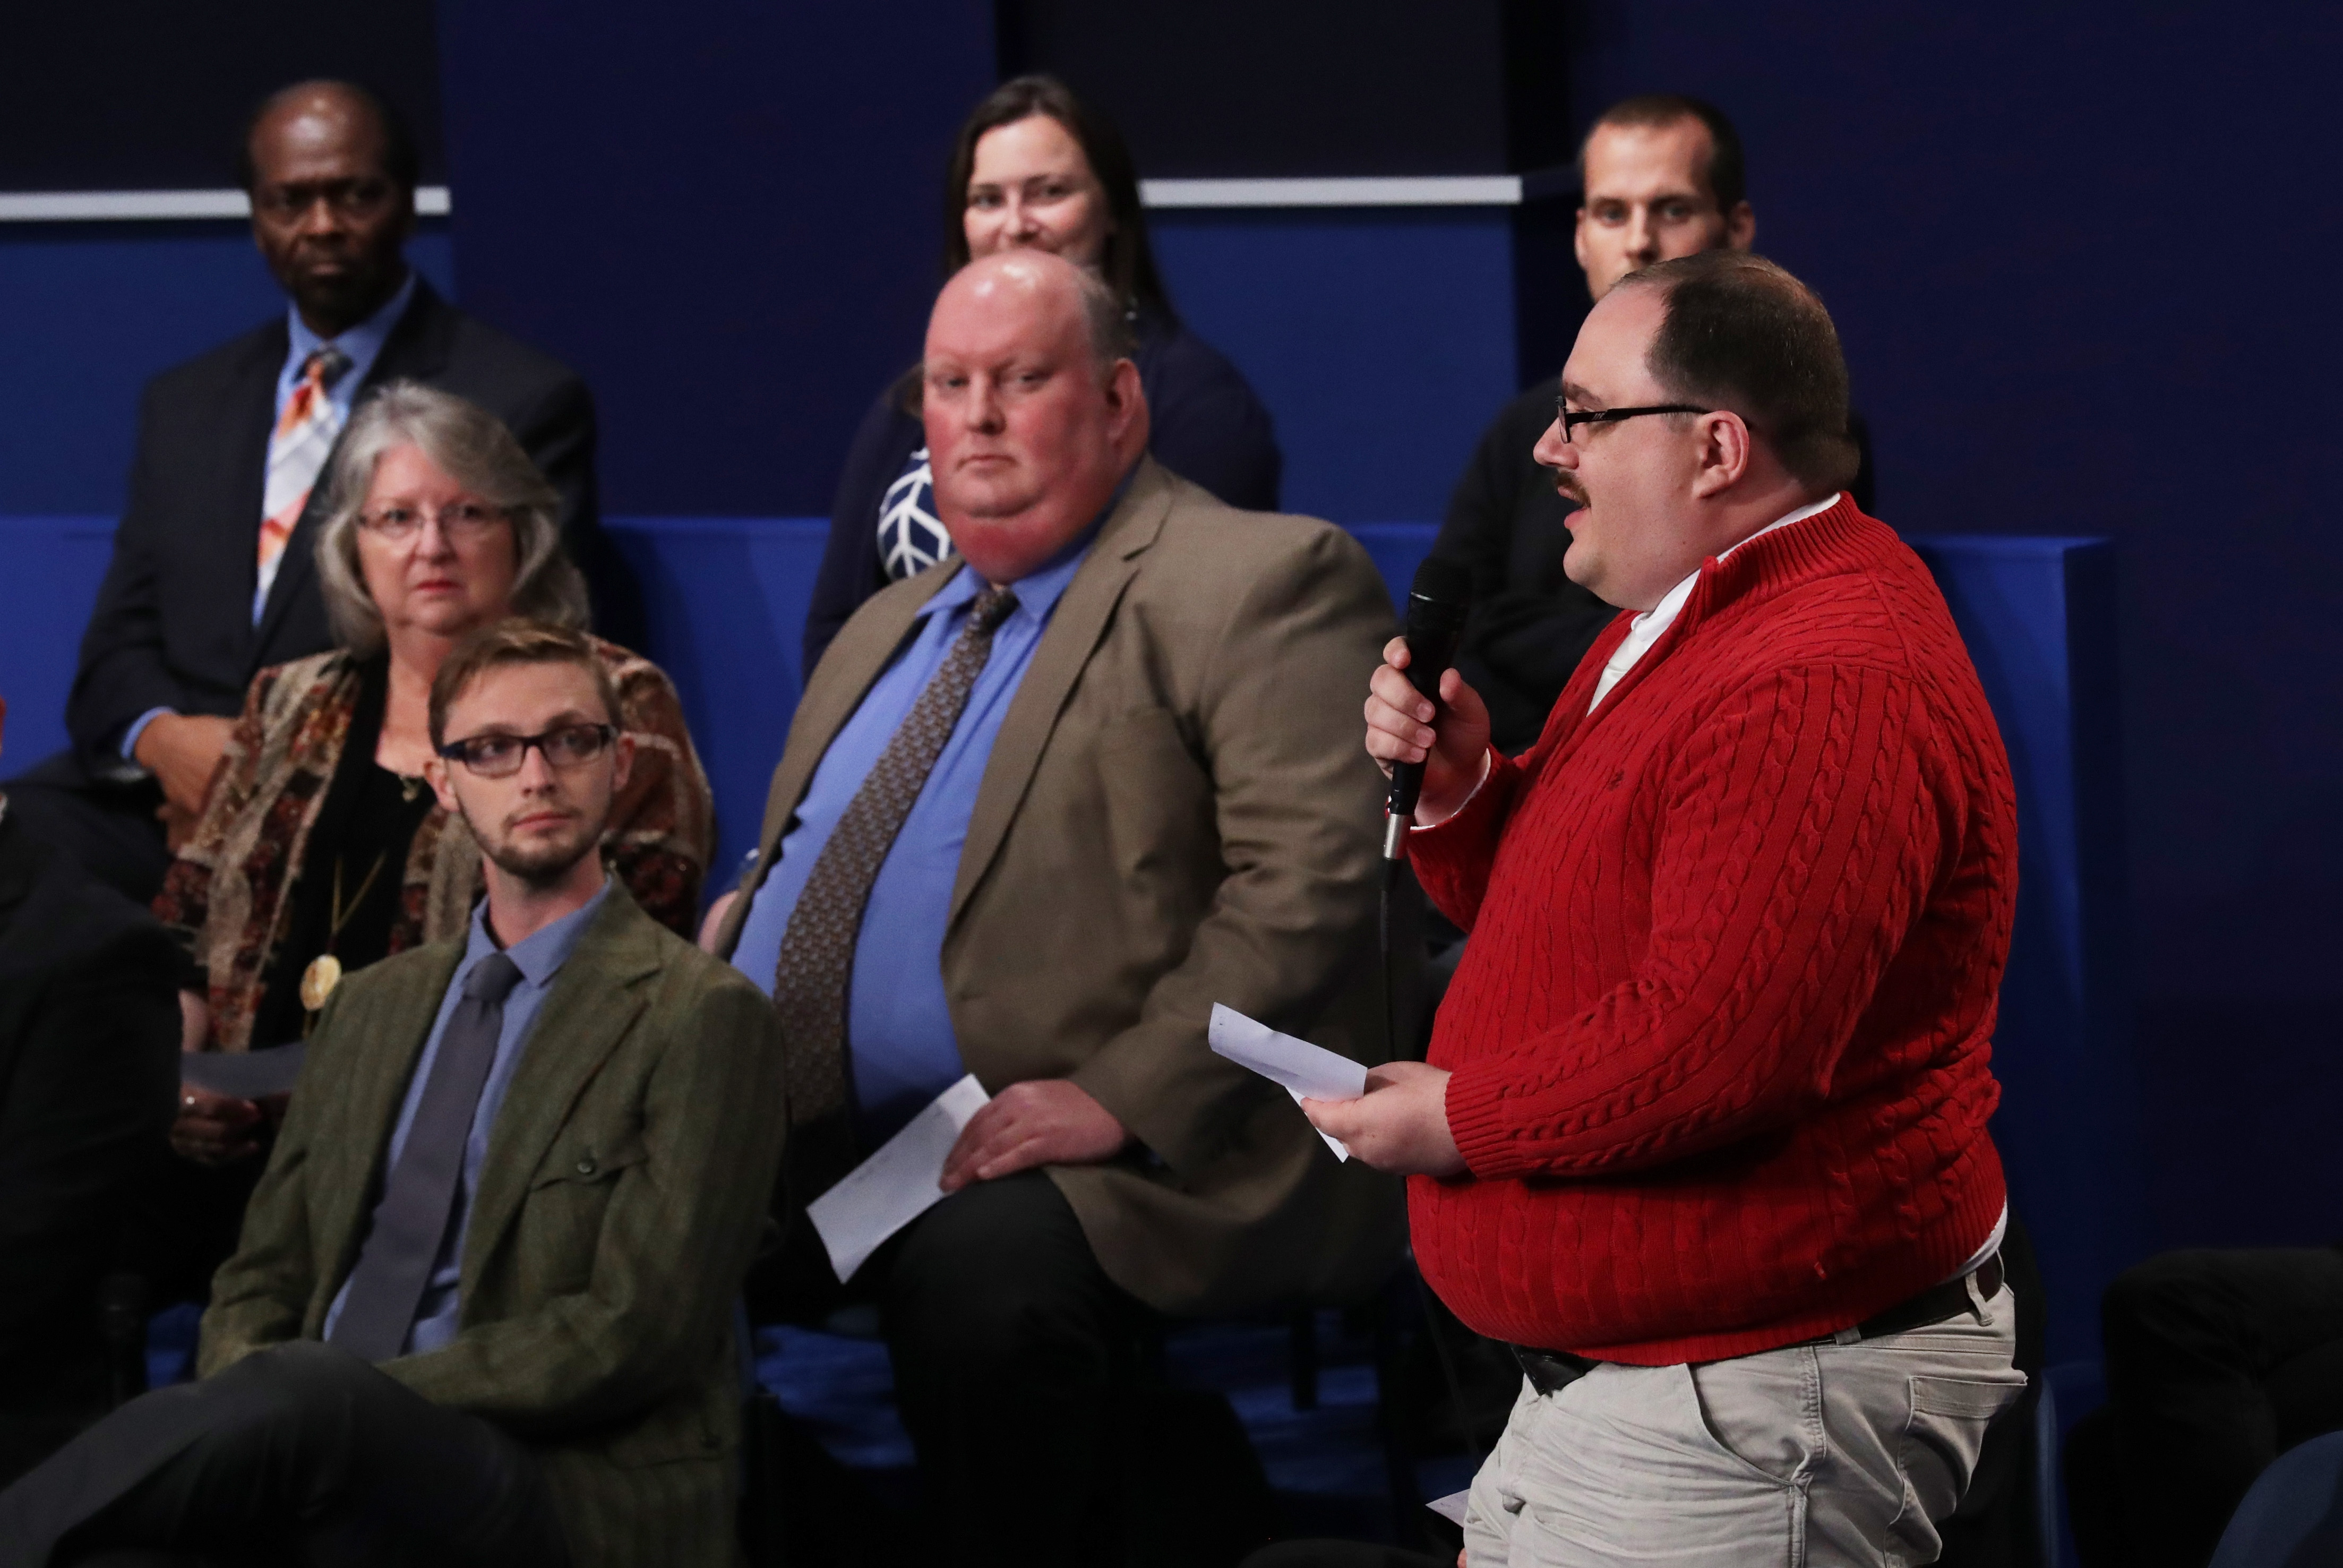 Is Ken Bone At The Last Debate? The Man In The Red Sweater Will Be ...